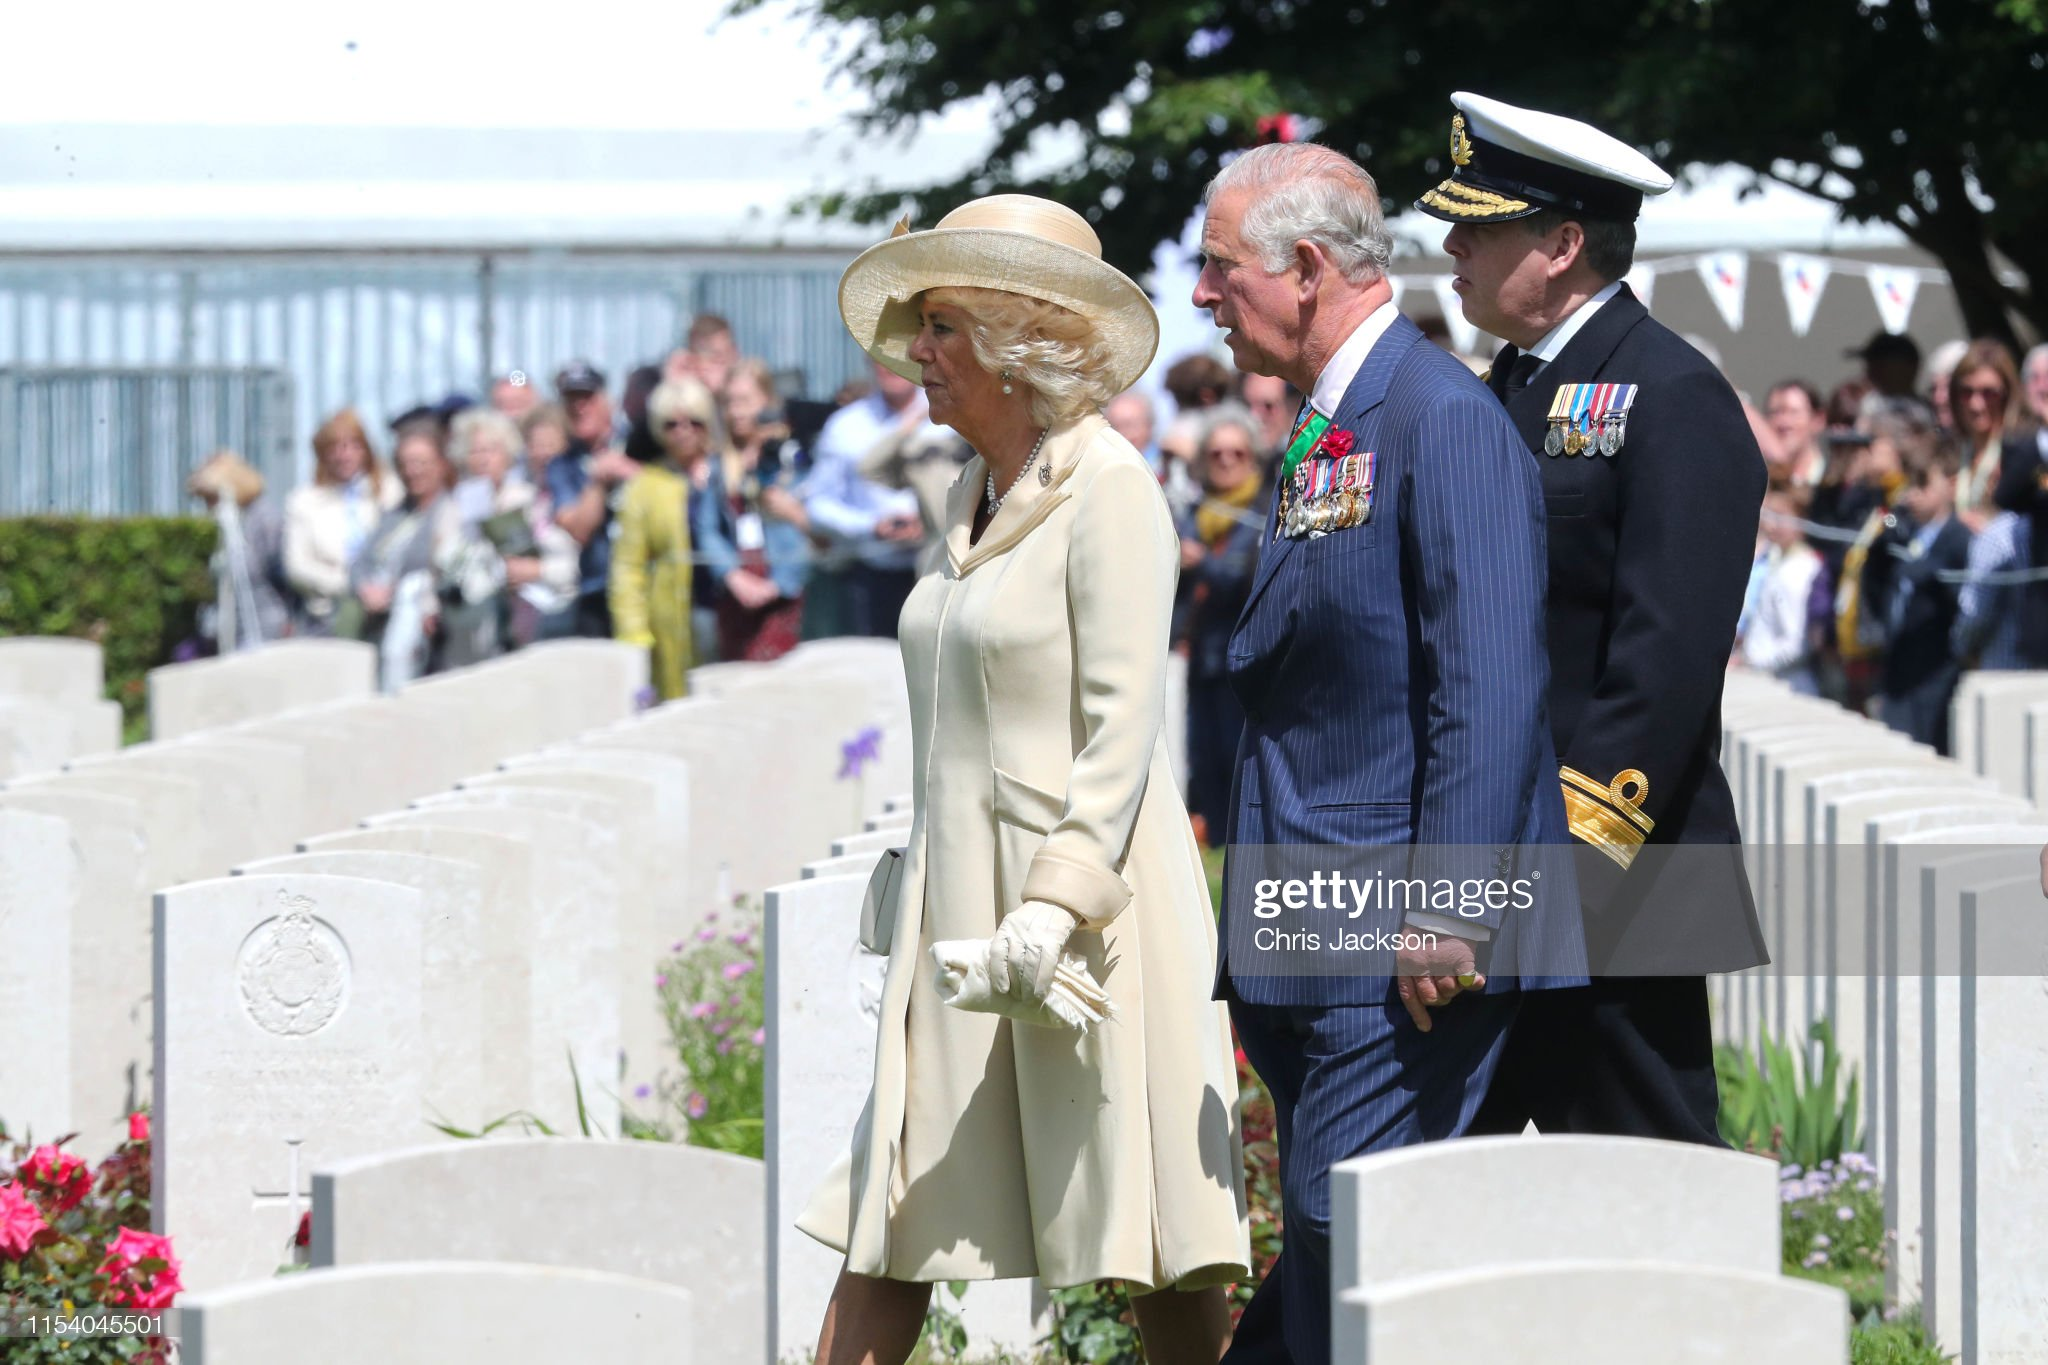 prince-charles-prince-of-wales-and-camilla-duchess-of-cornwall-attend-picture-id1154045501